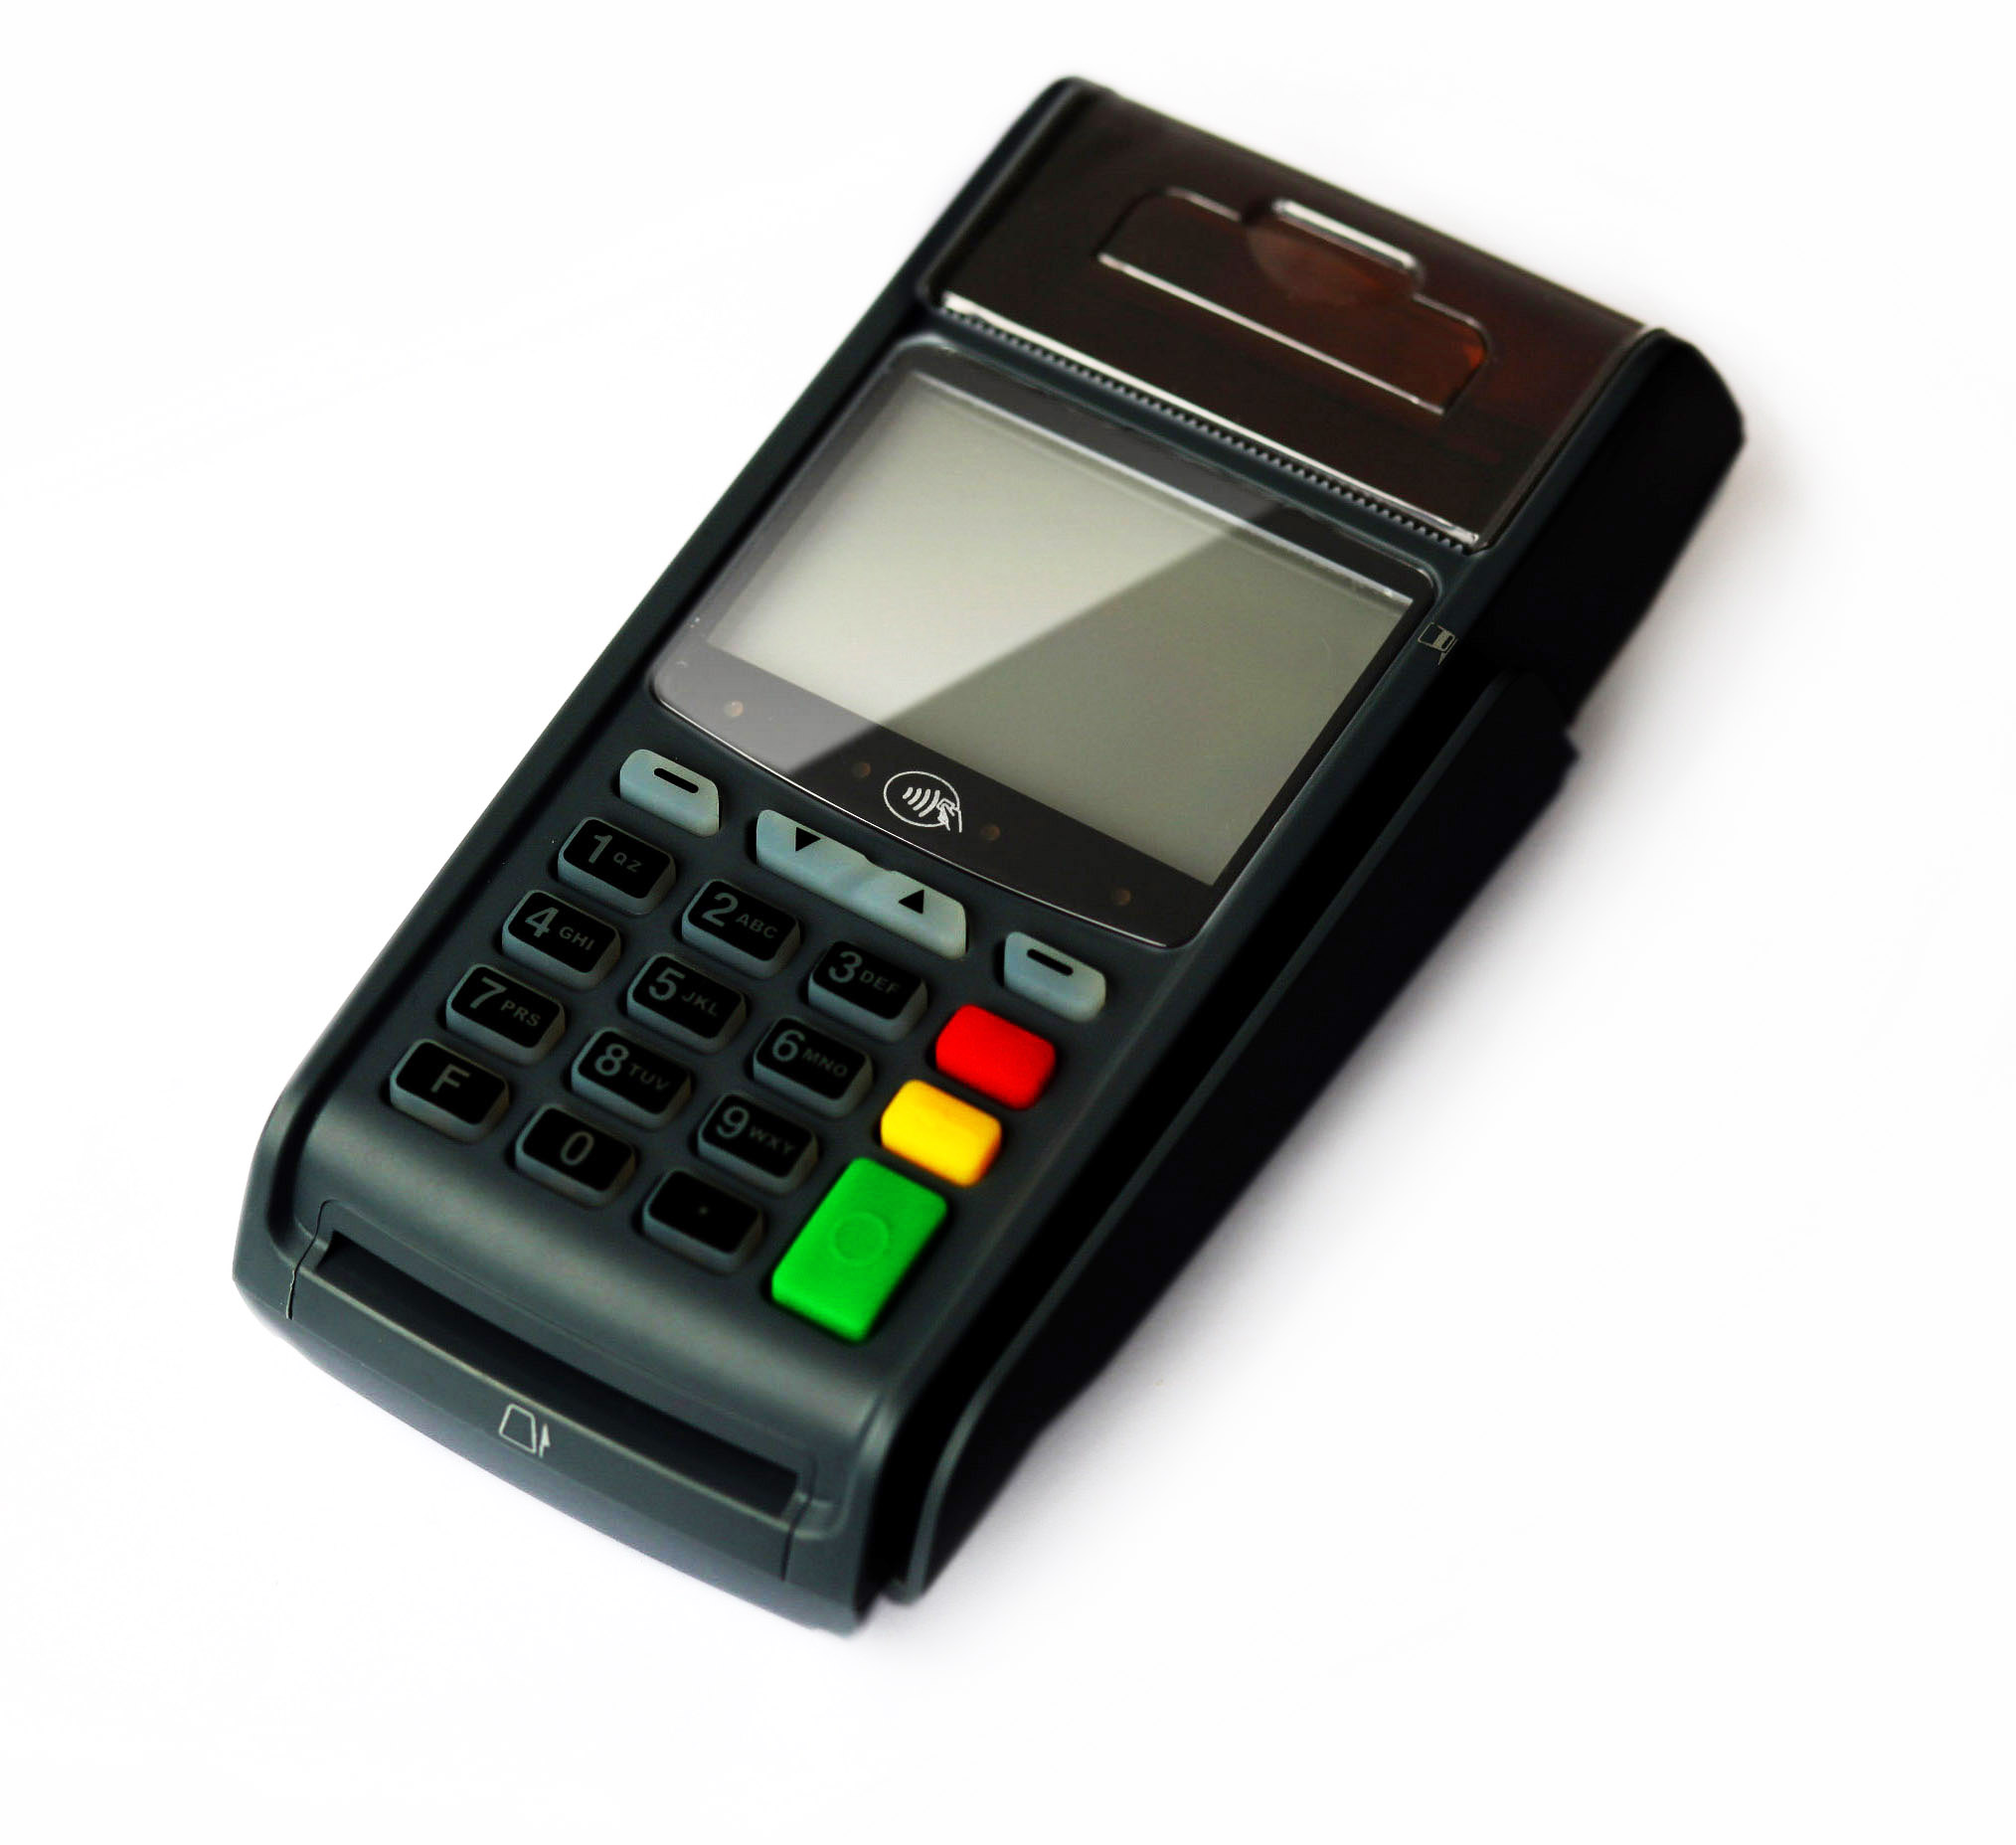 FH08 Portable Pos with Biometric and Printer